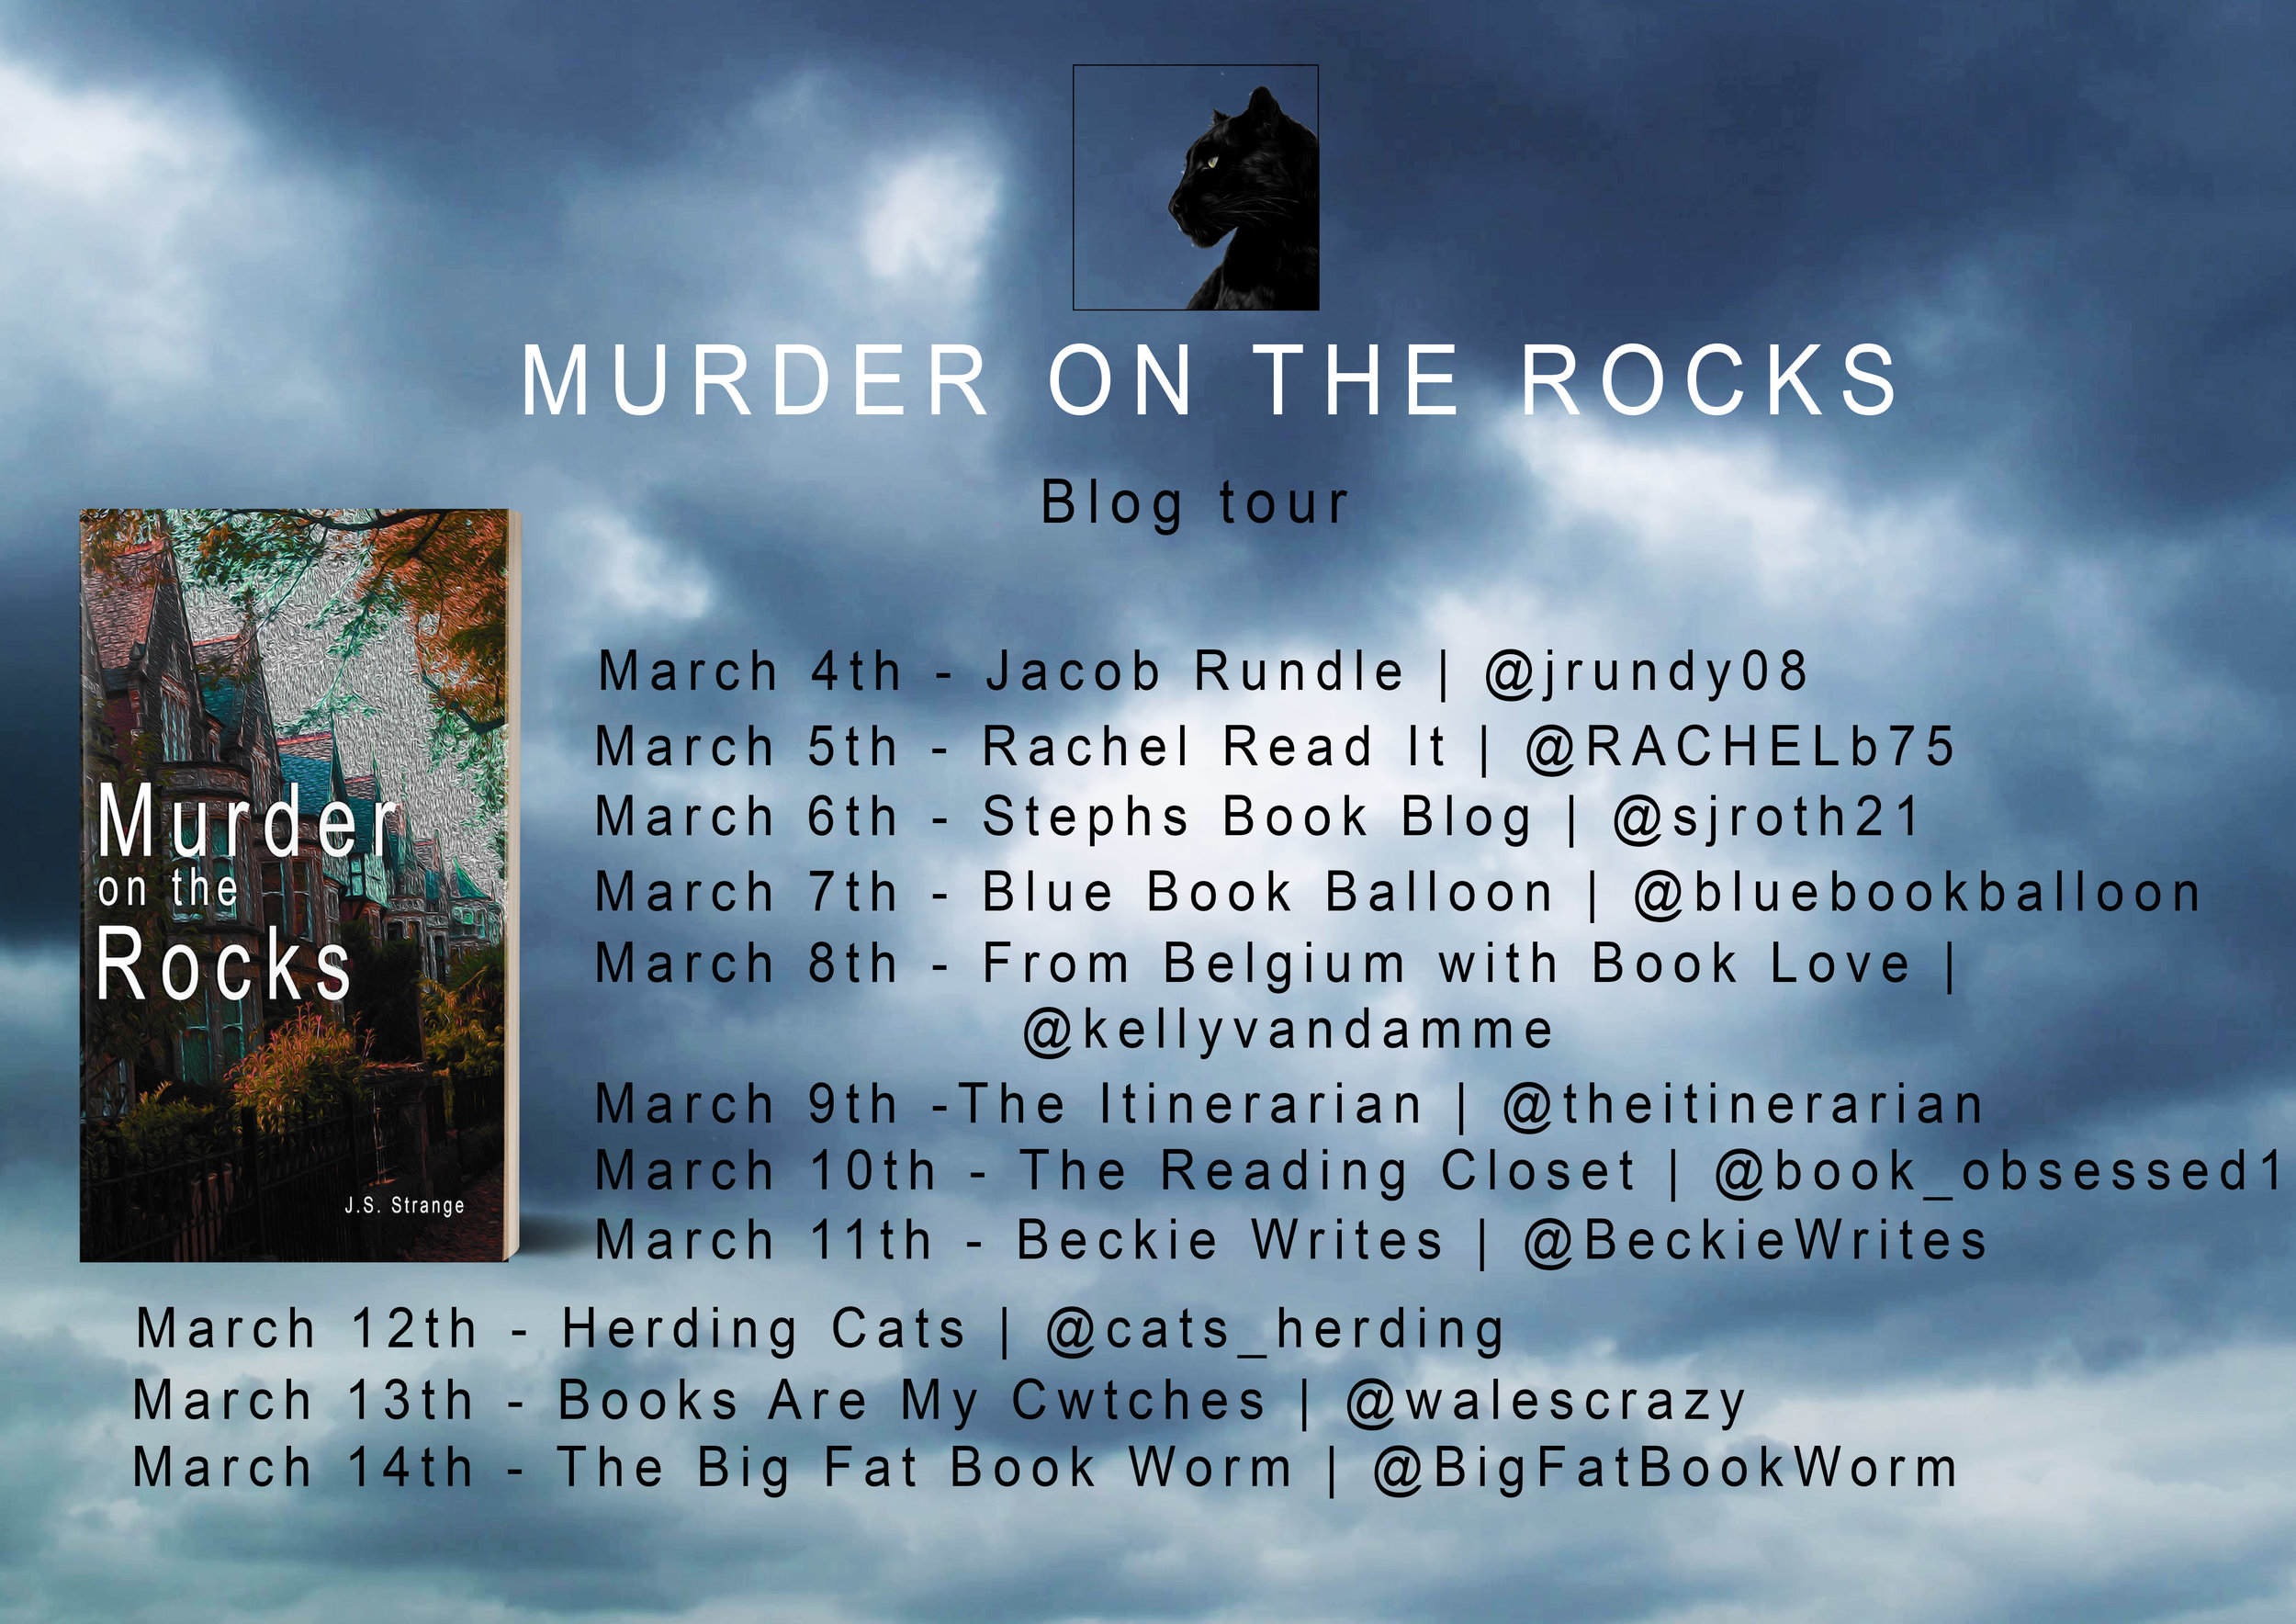 Murder on the Rocks - Blog Tour.jpg